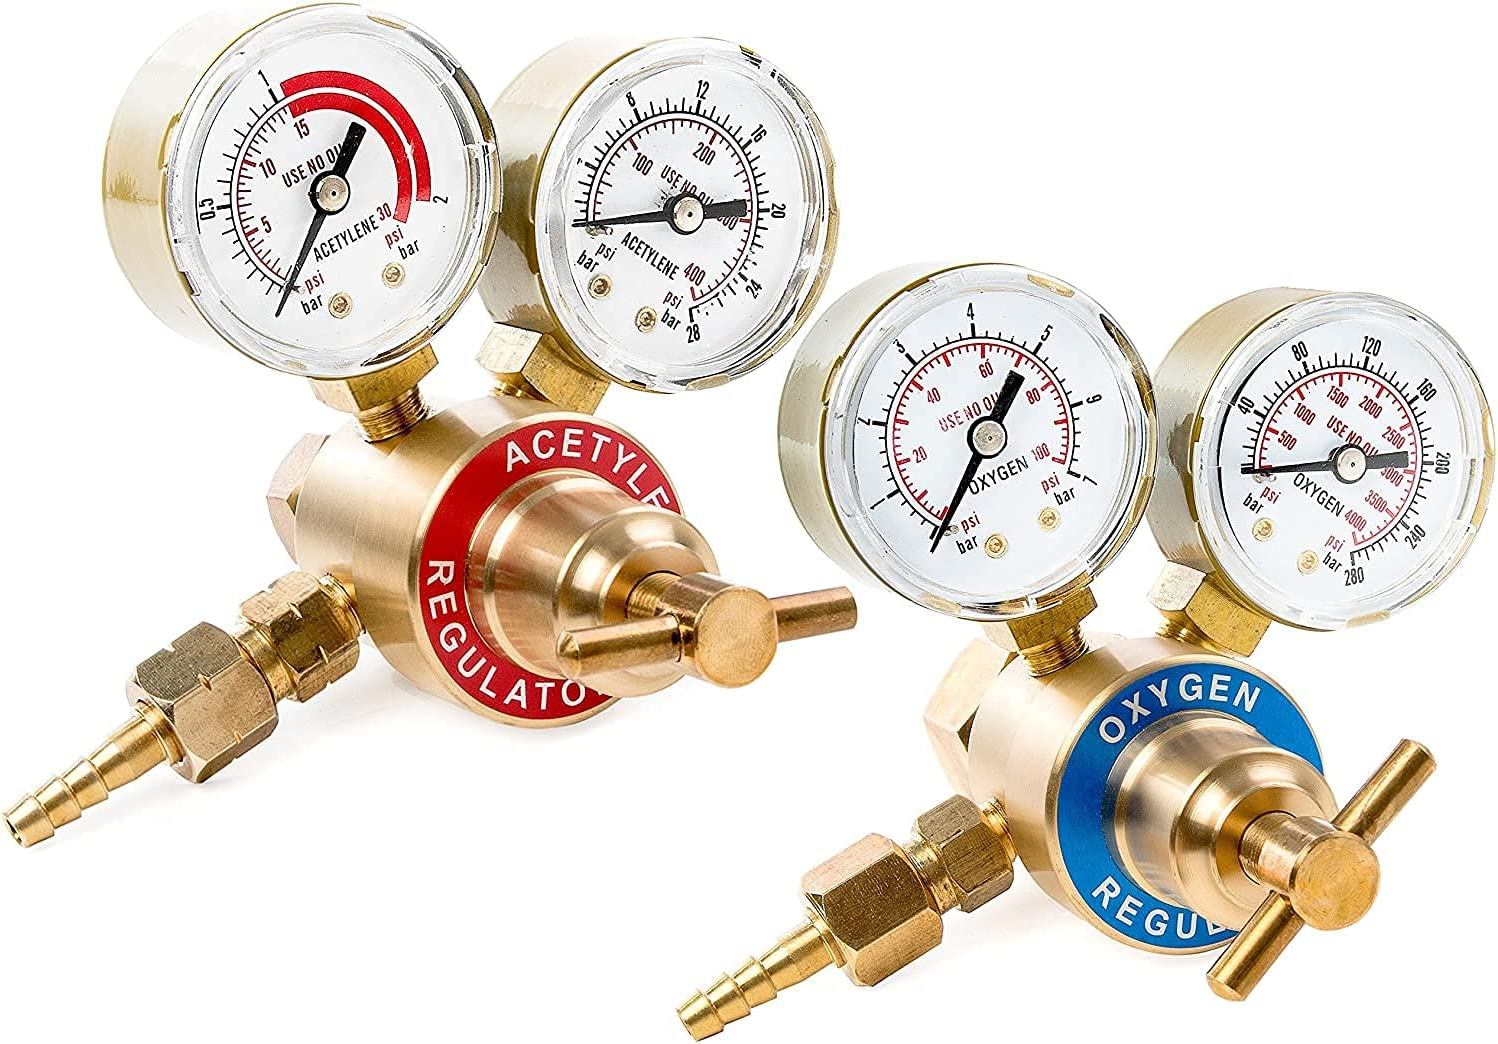 KHY Parts Replacement Branded Wholesale goods Solid Brass and Regulator Oxygen Acetylene